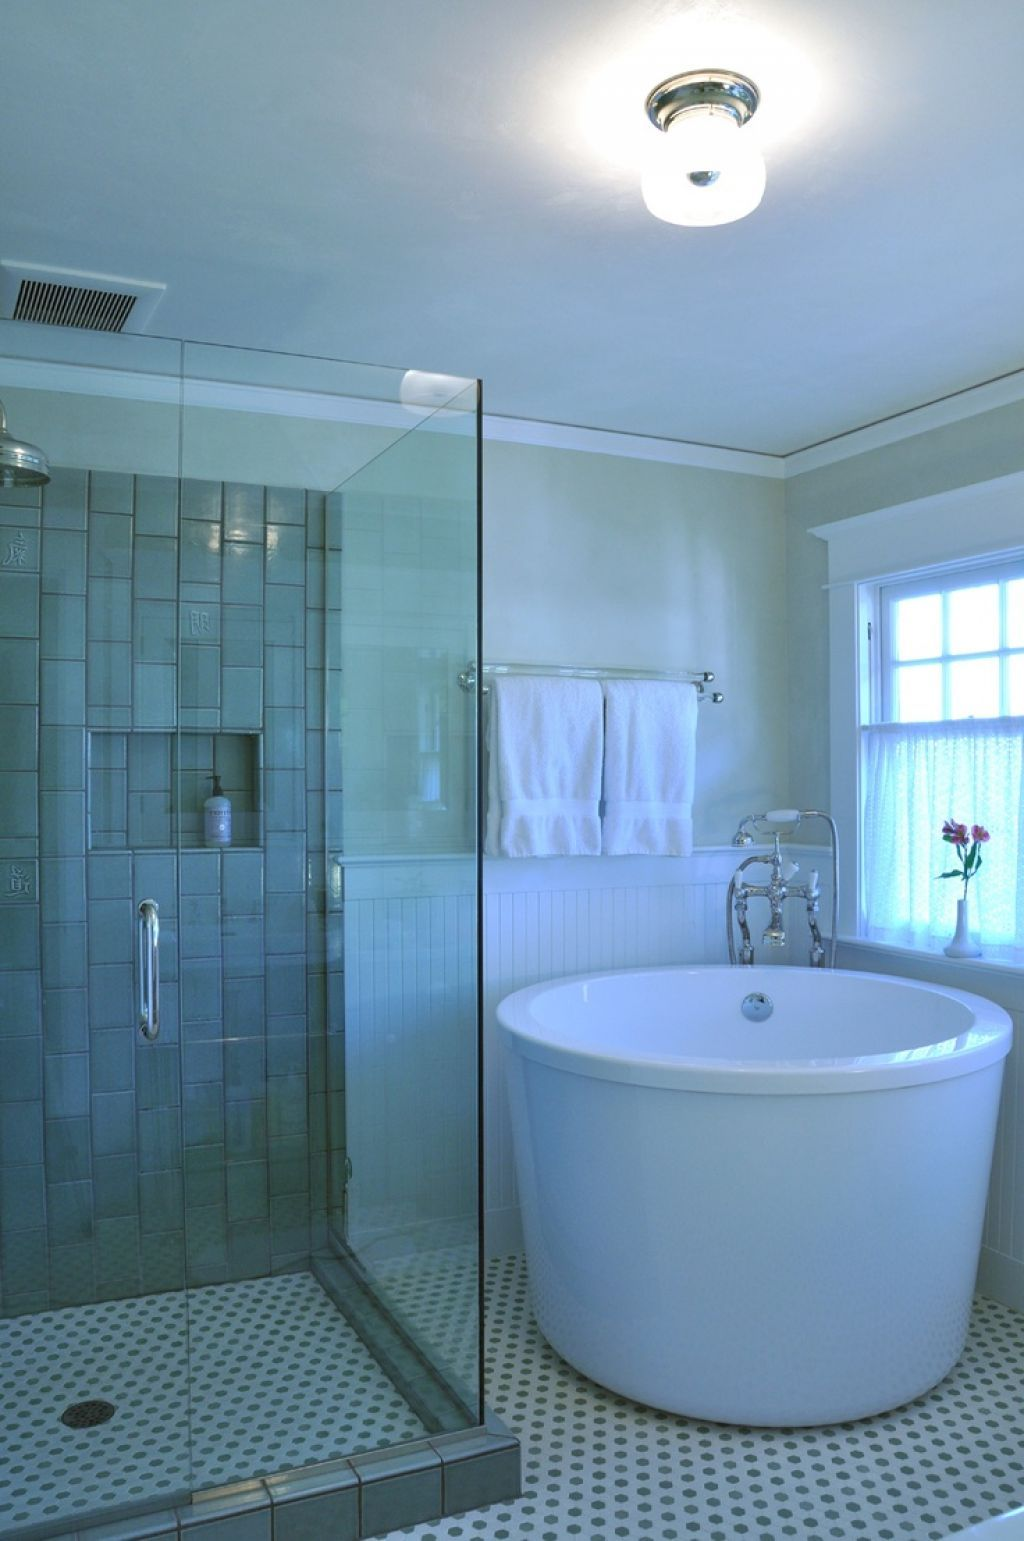 Sketch of The Options of Deep Tubs for Small Bathroom | Bathroom ...